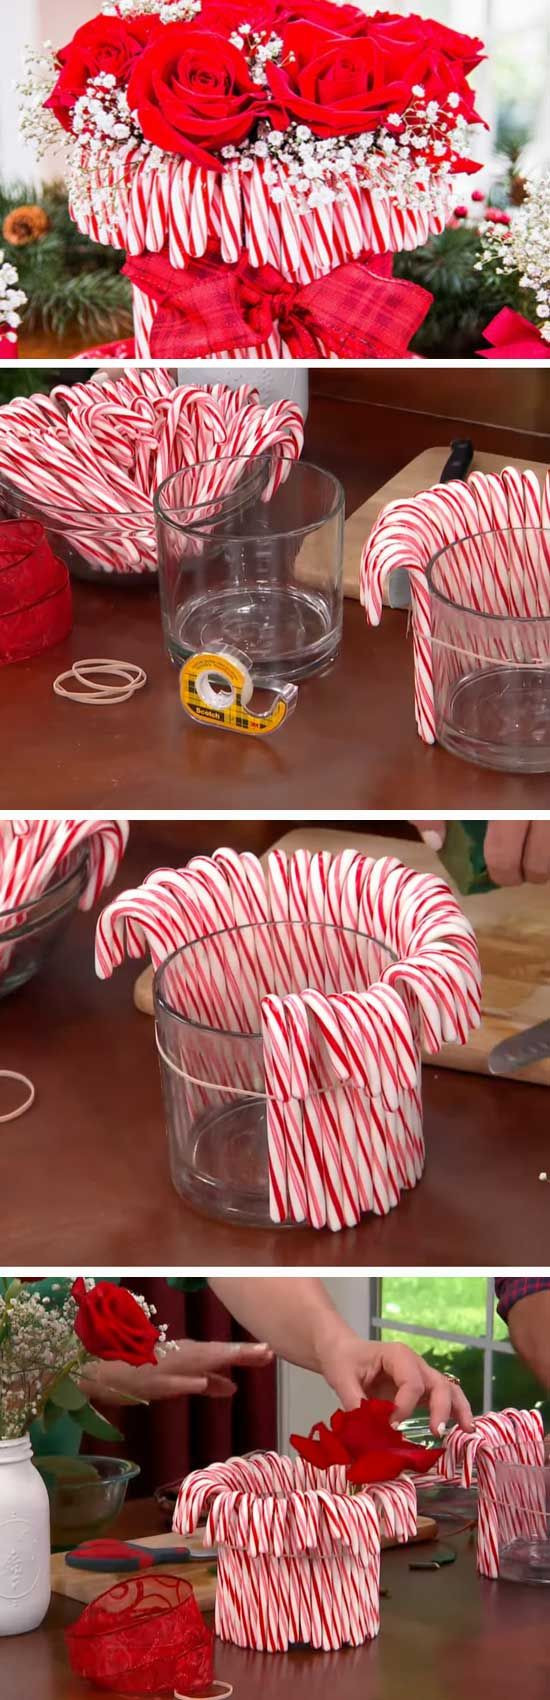 Christmas Party Theme Ideas For Adults  Best 25 Candy cane crafts ideas on Pinterest